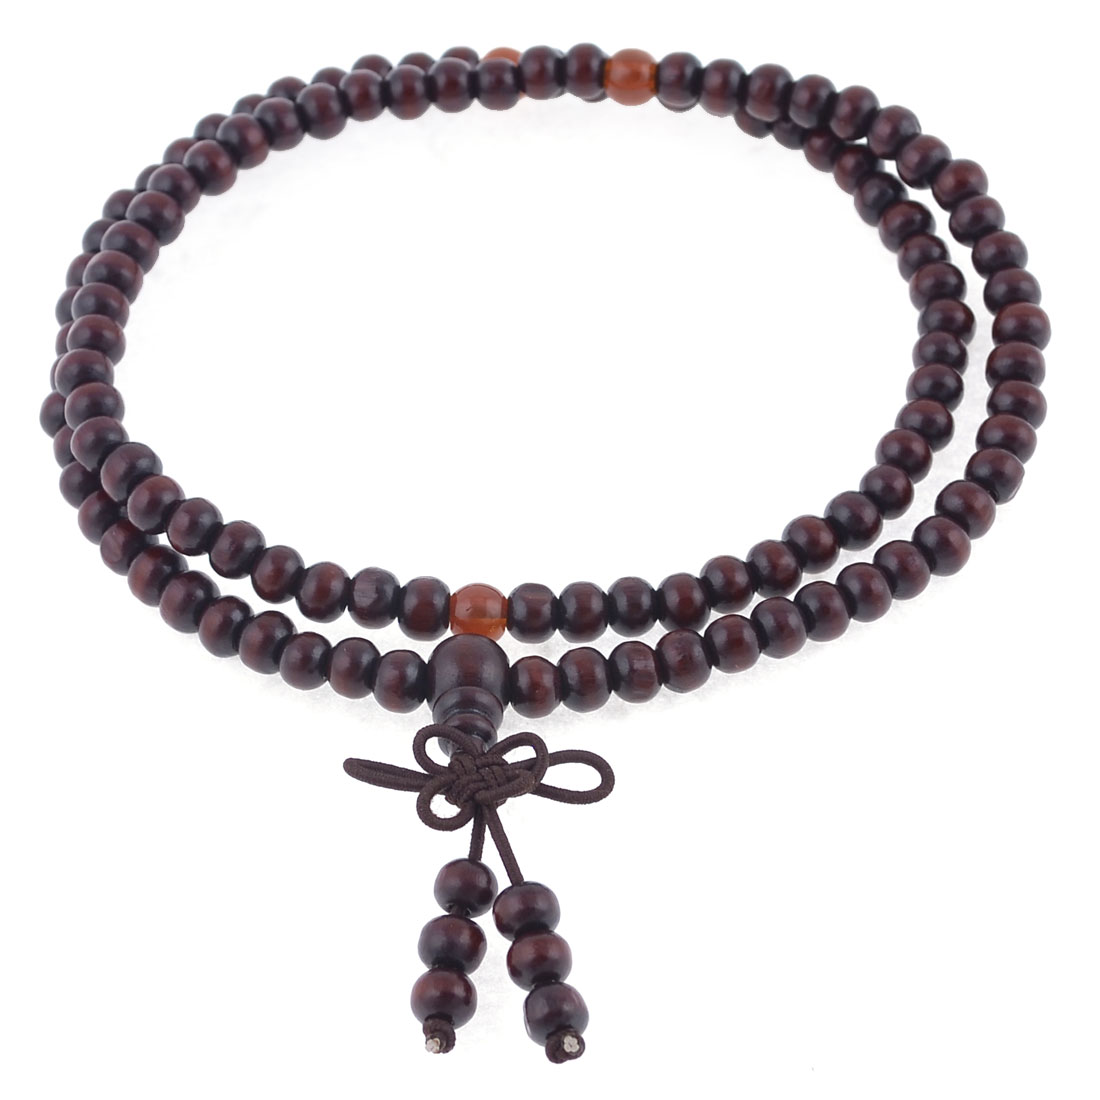 Stretch Strap 6mm Dia Beads Sandalwood Buddhist Prayer Necklace Burgundy